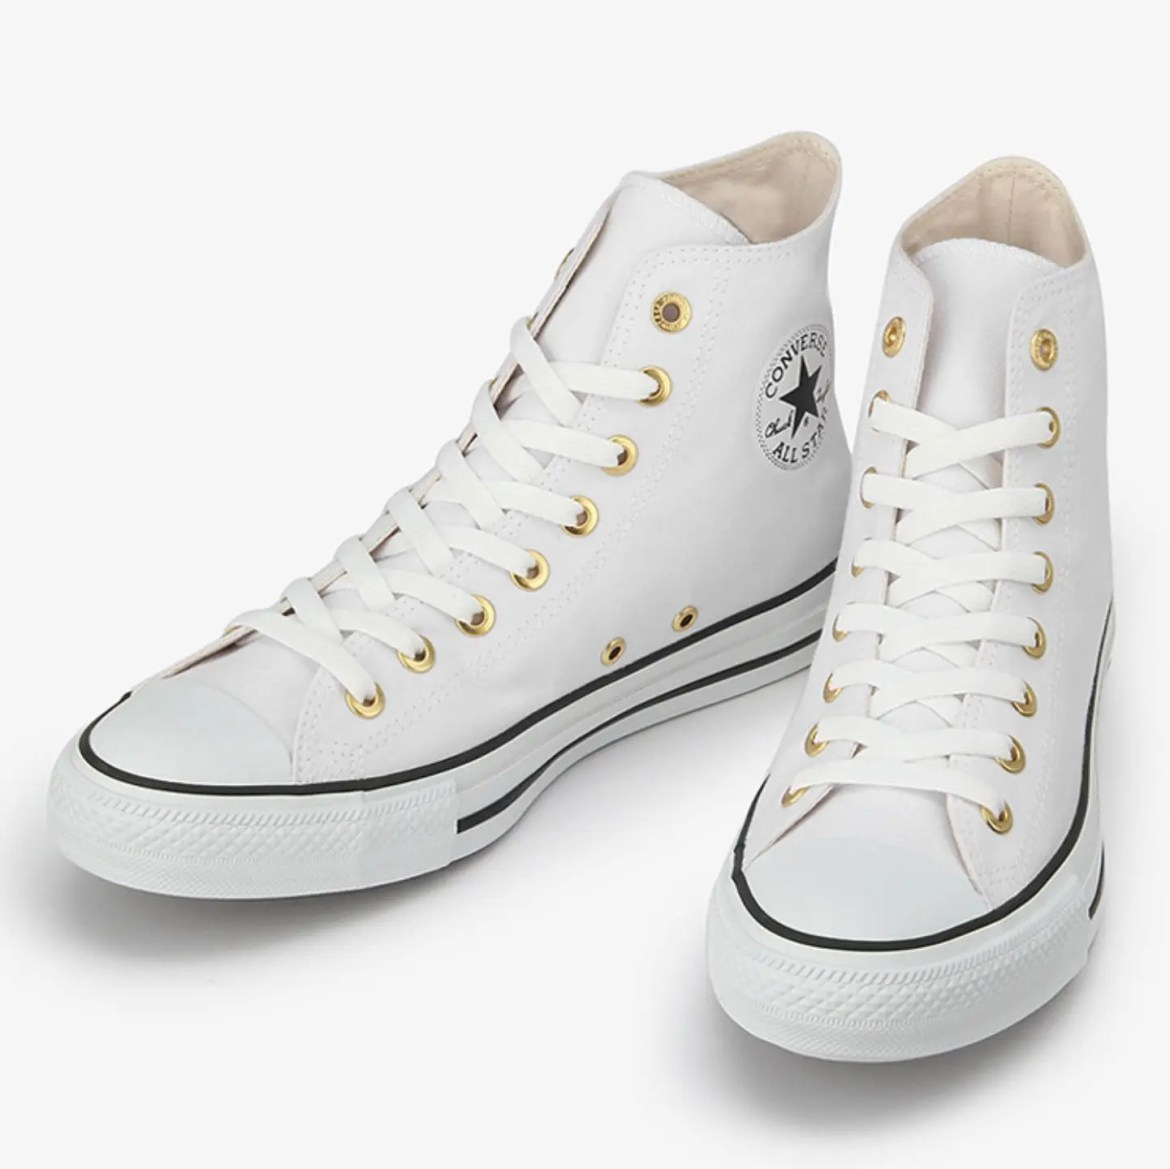 Converse ALL STAR WEARABLE STICKER HI WHITE-02